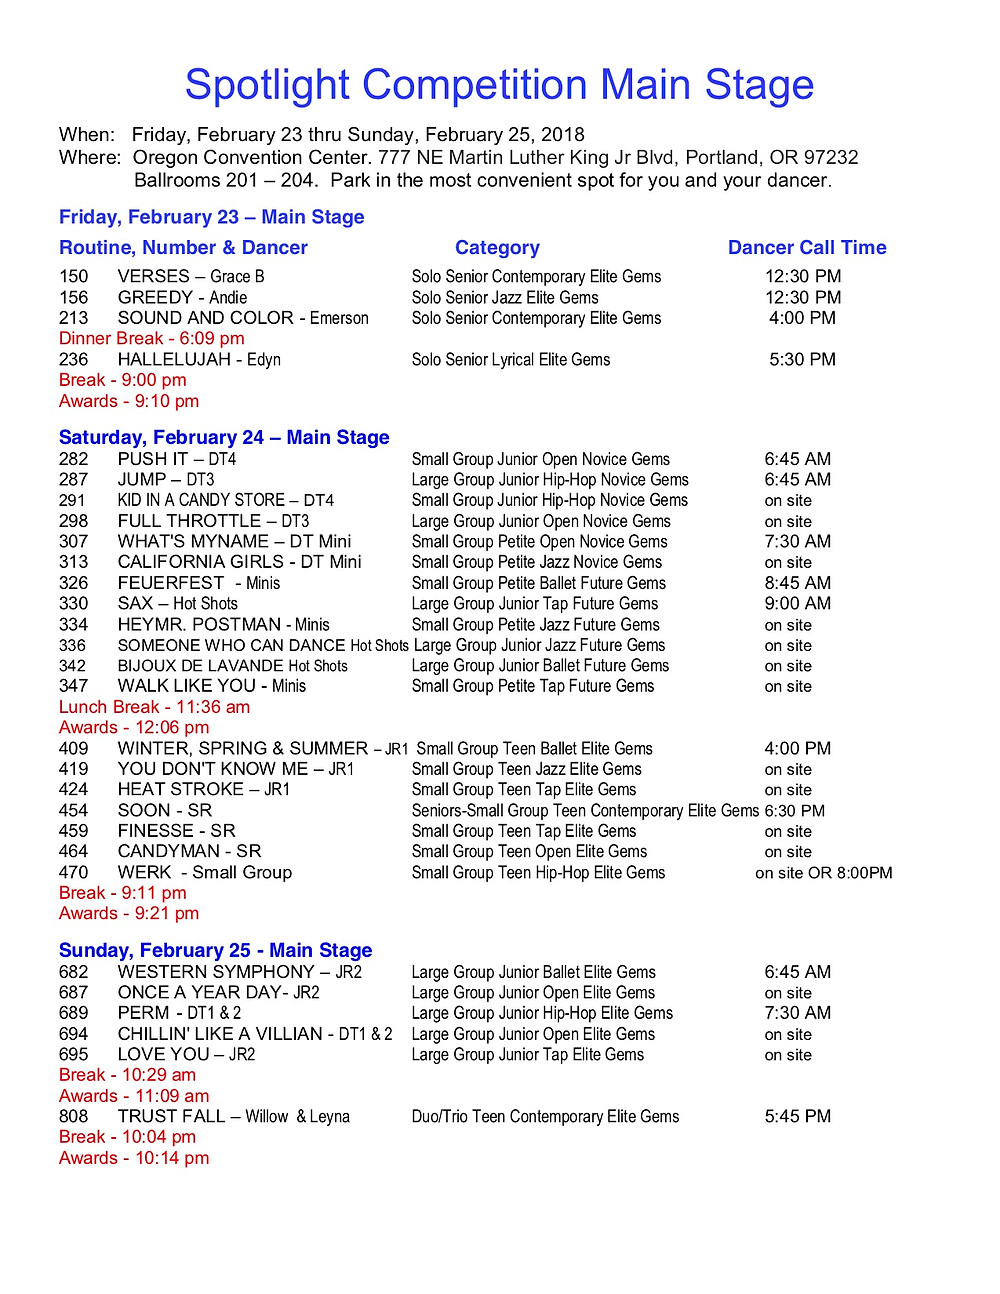 For easy access of the Spotlight Schedule